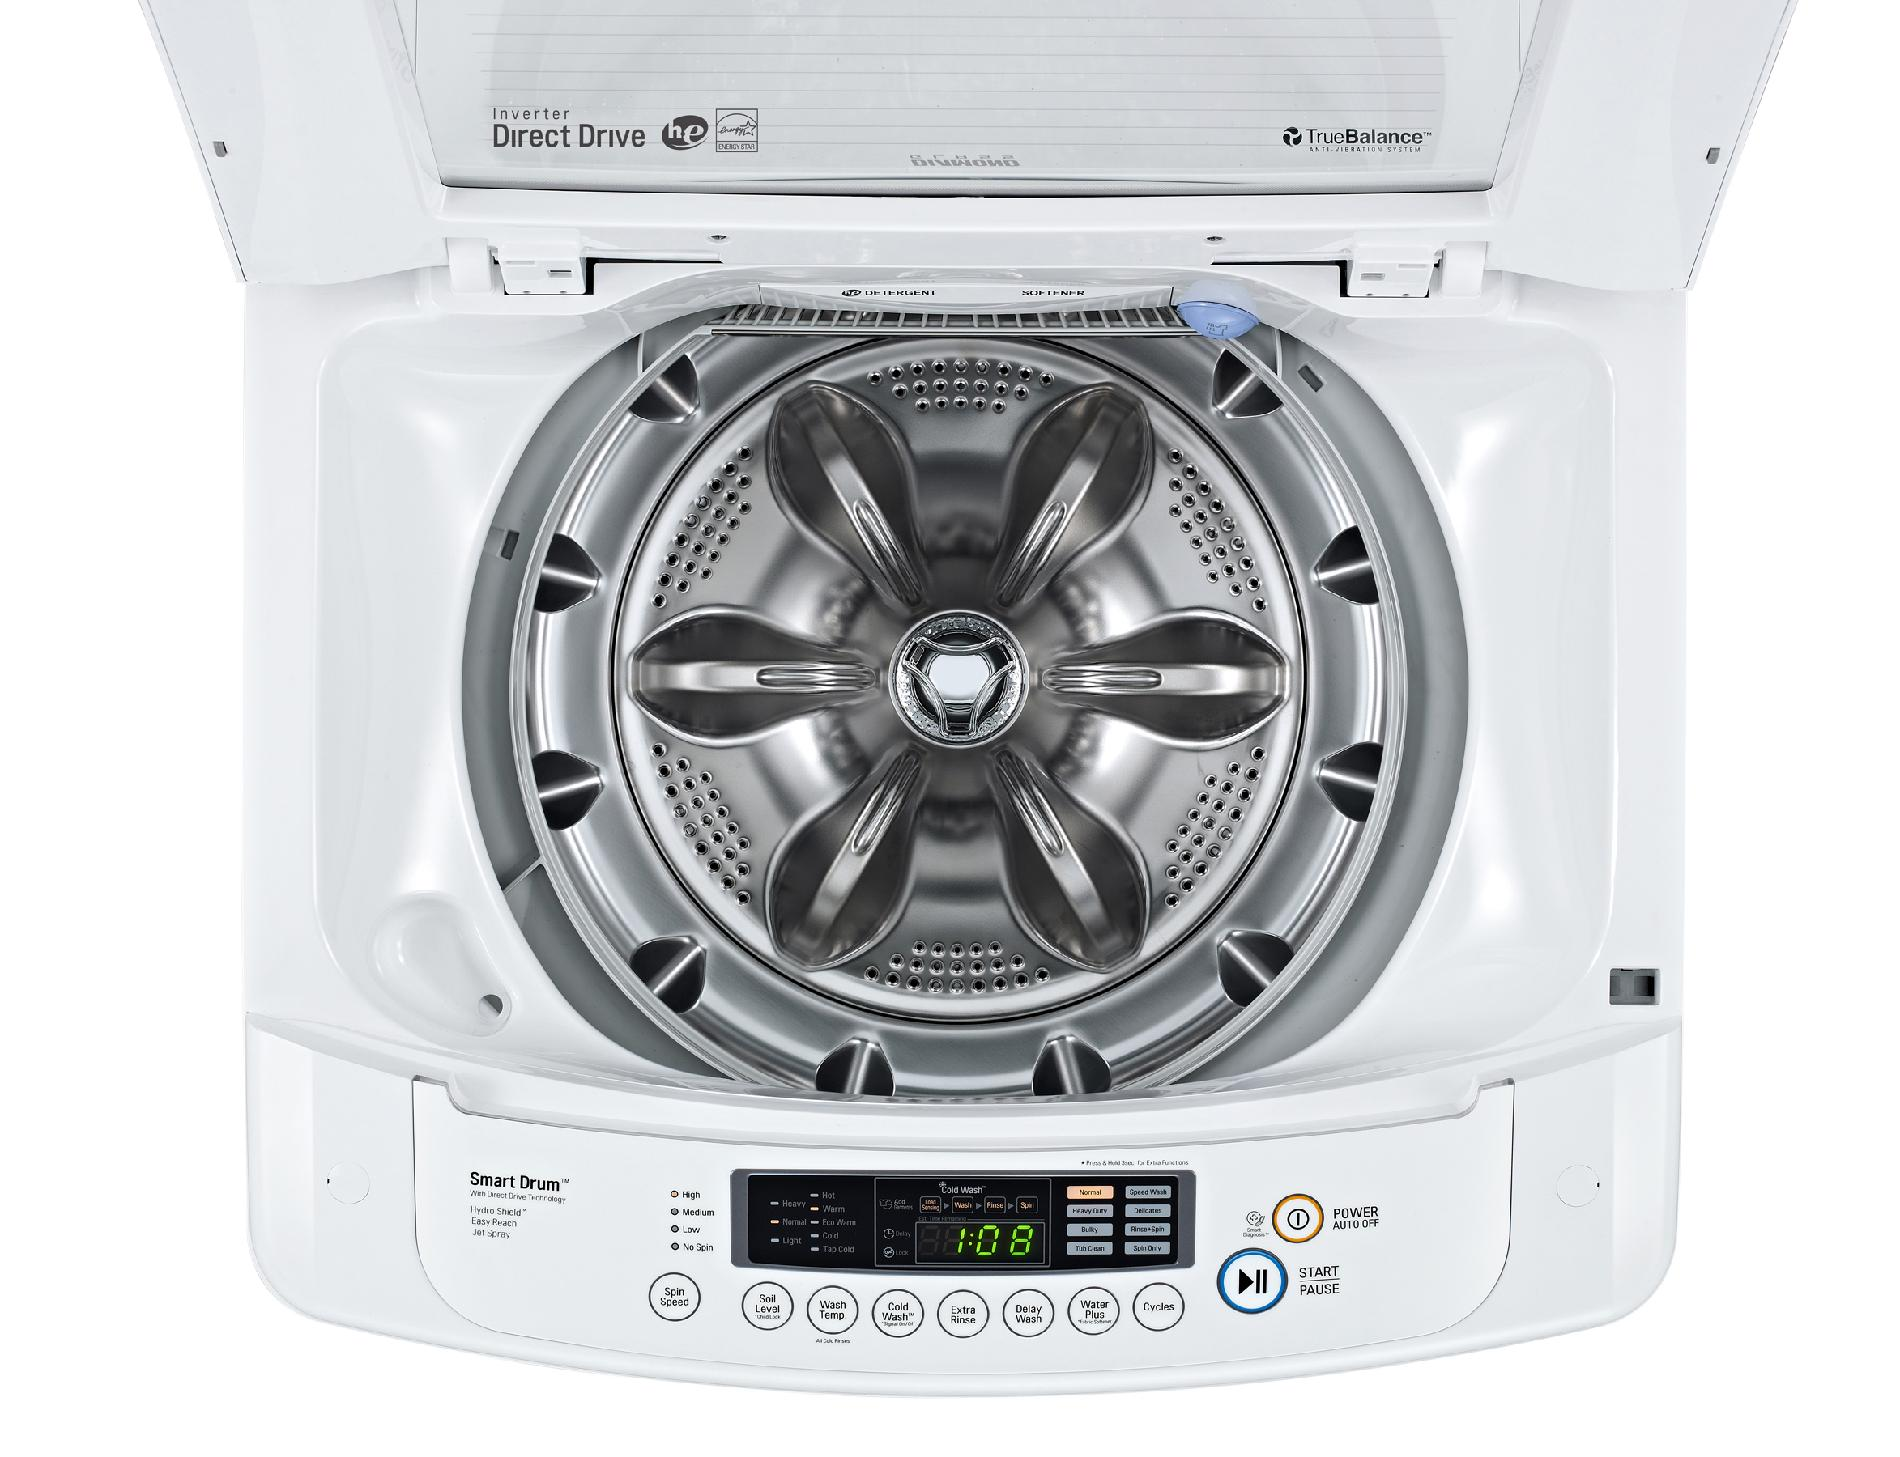 LG 3.6 cu. ft. Top-Load Washer - White